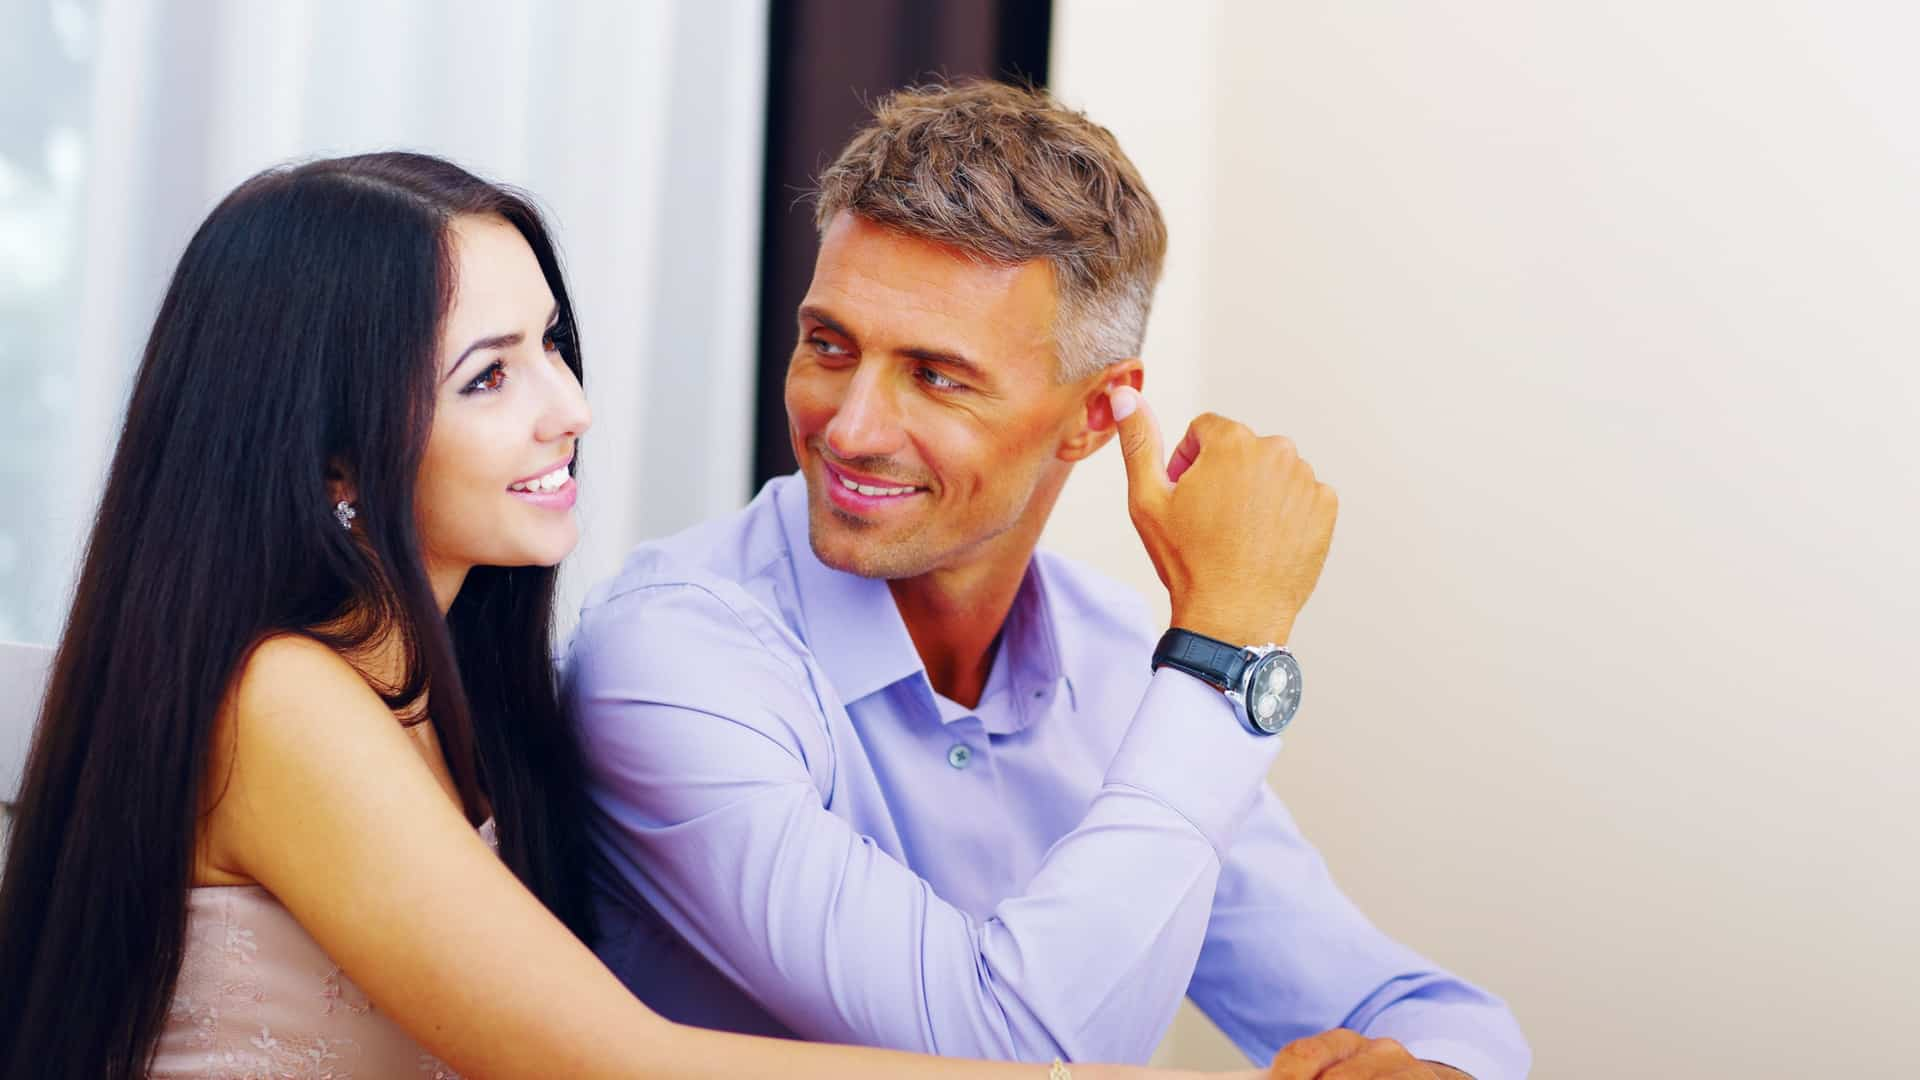 Mature and professional dating service